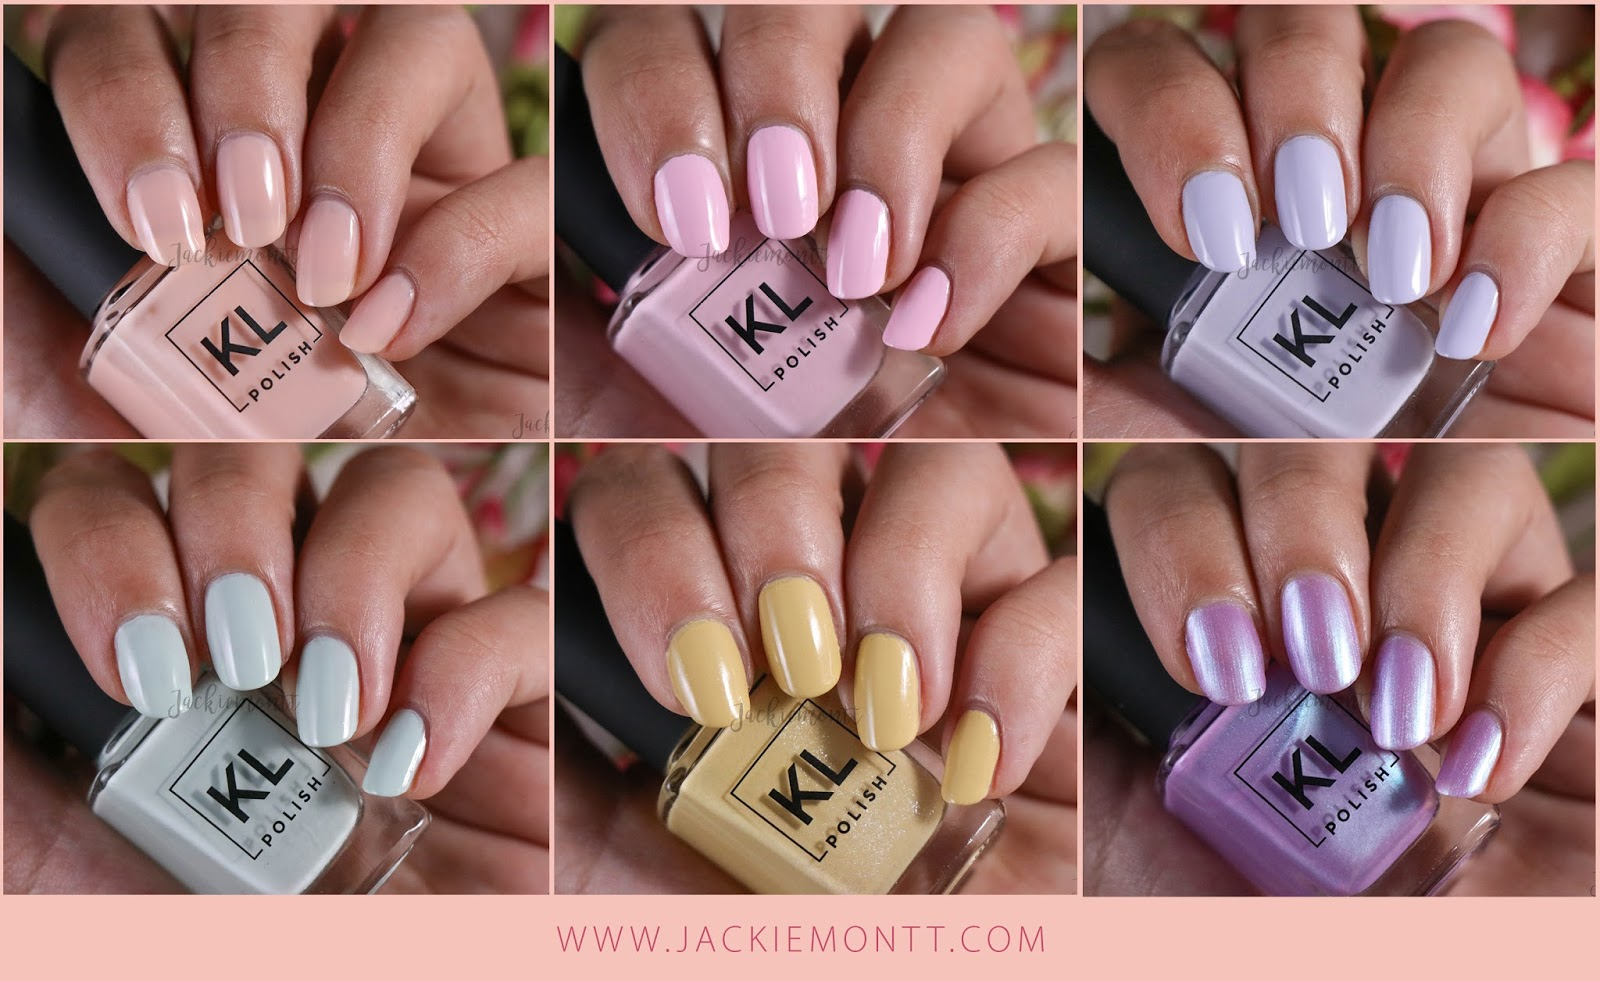 KL Polish Ethereal Garden Collection Swatches and Review - JACKIEMONTT